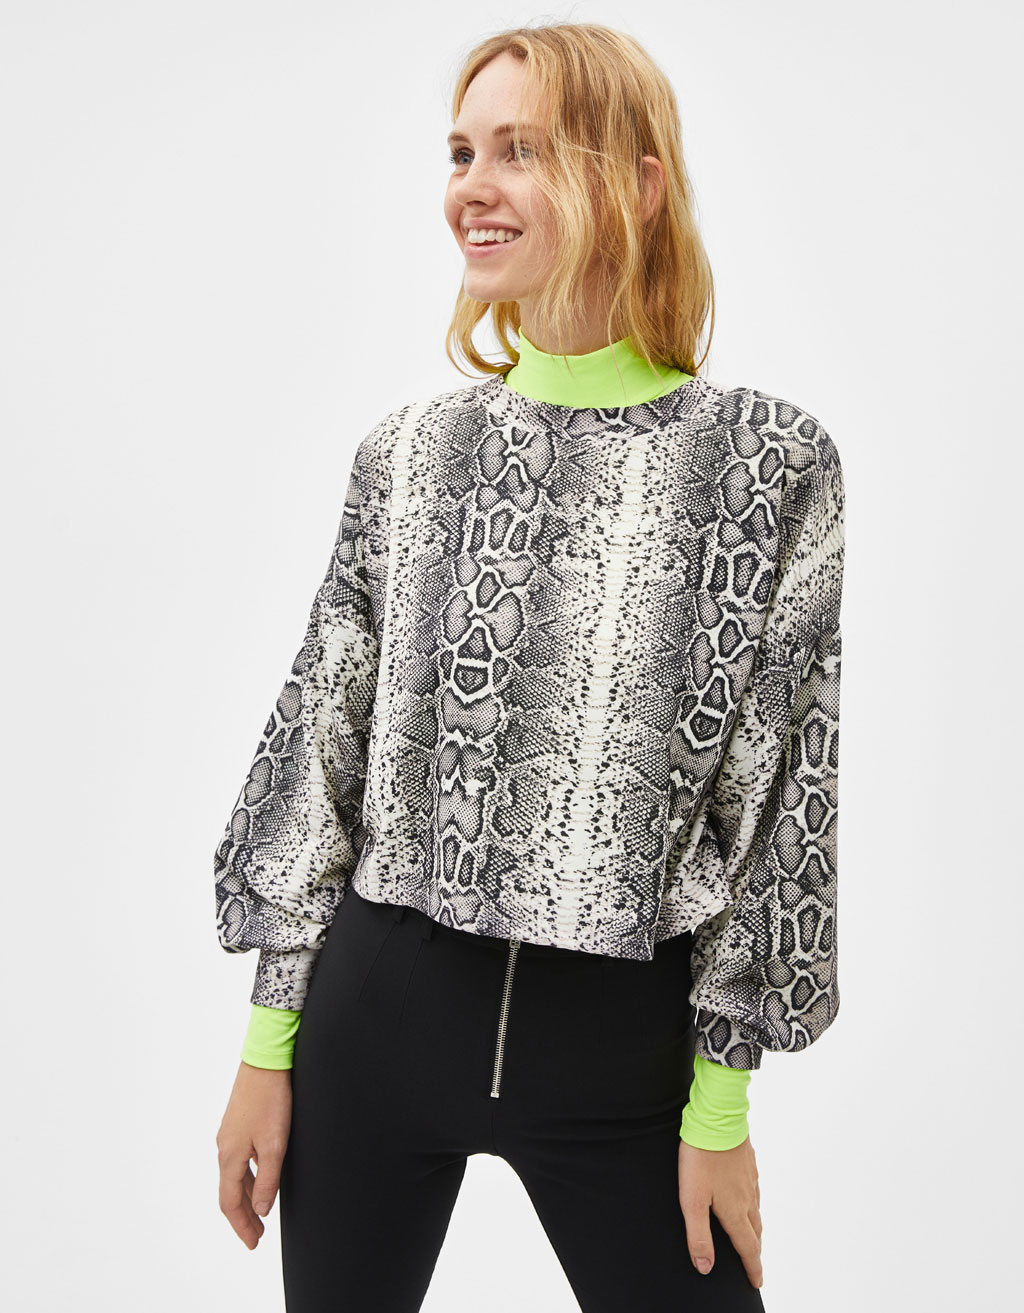 All-over print sweatshirt